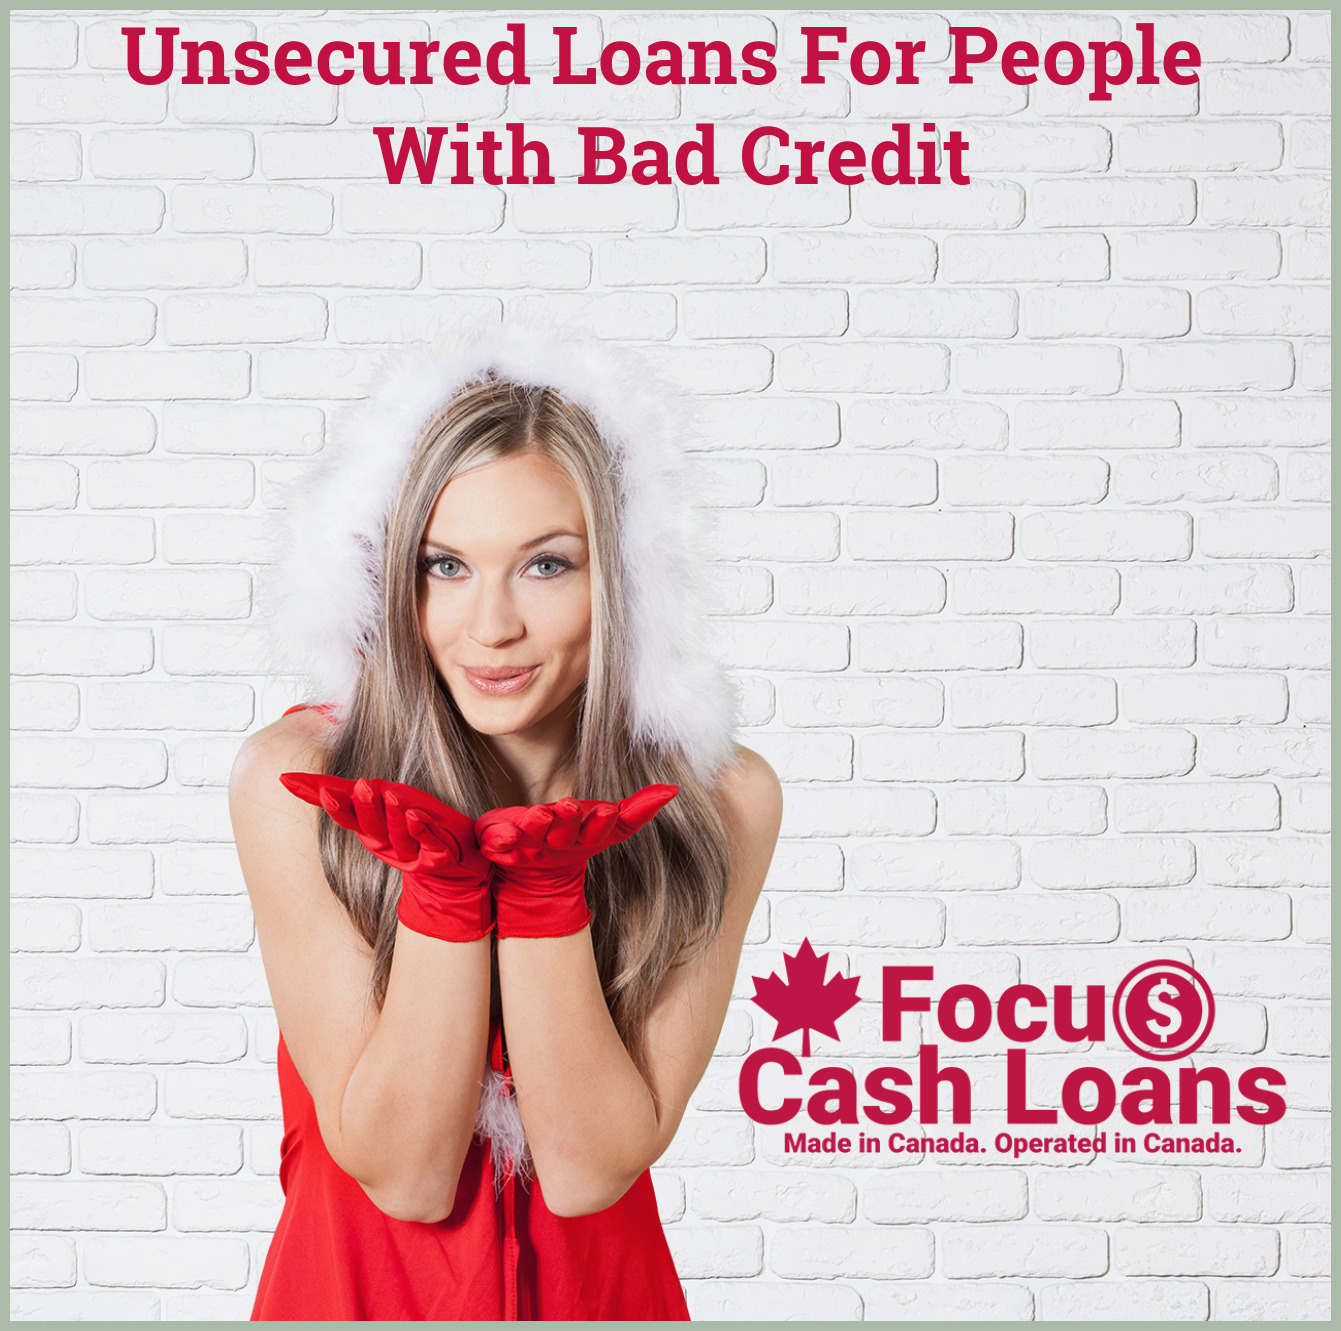 Unsecured Business Loans For People With Bad Credit. Property Investment Loan Government Bonds Buy. Nephrology Locum Tenens Convention Give Aways. Bureau Of Insurance Va Insurance In Austin Tx. Tv Commercials Companies Sanford Garage Doors. Computer Video Conference 0 Rate Credit Cards. Mastercard Credit Card For Students. Dedicated Server Cpanel Fionna Apple Criminal. Life Insurance Policy Meaning